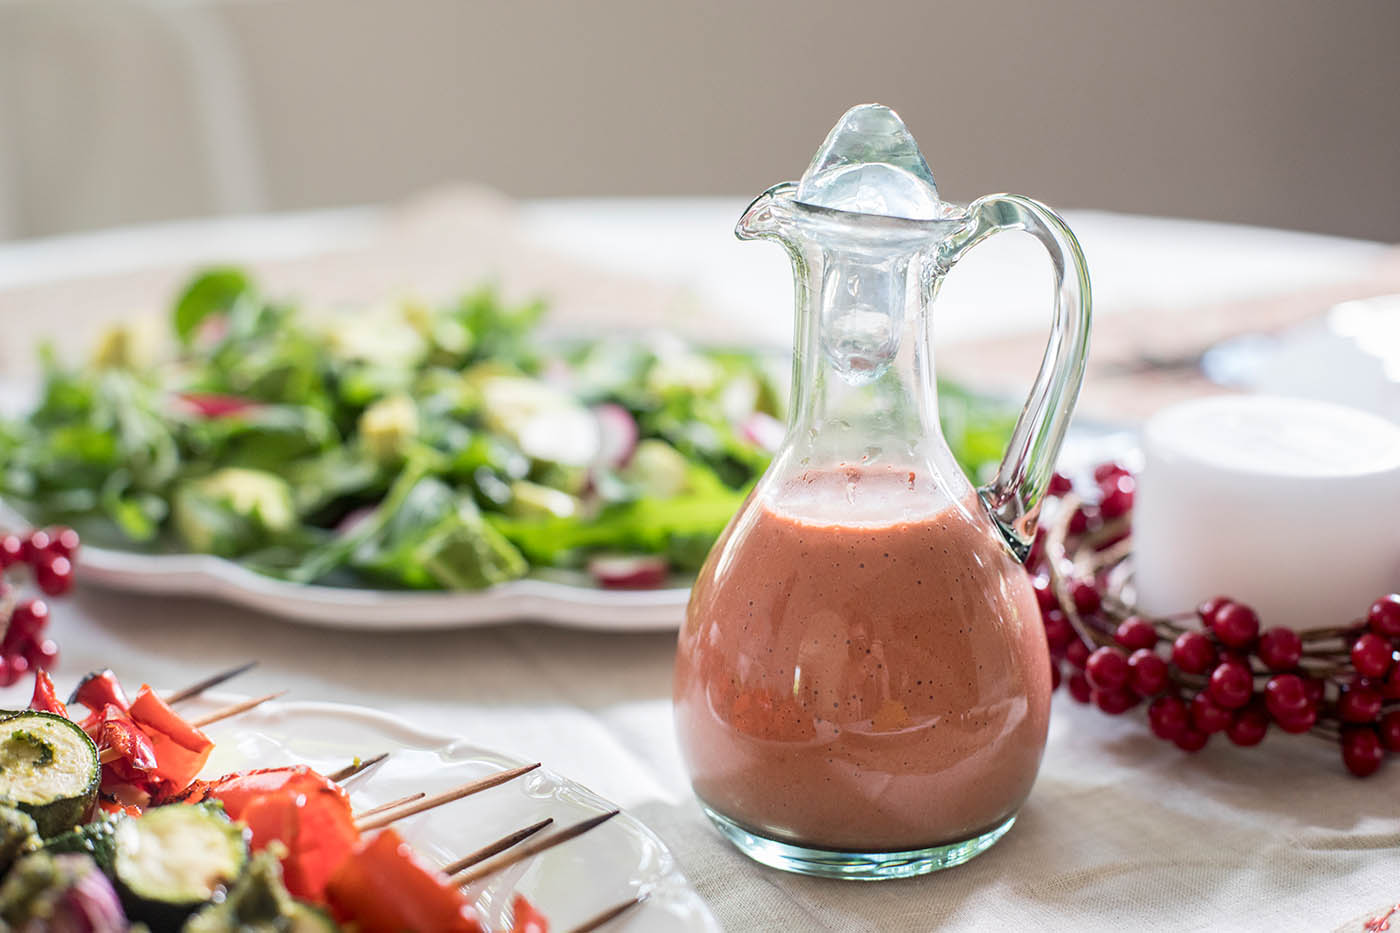 12 tips to rock a plant-based Christmas feast